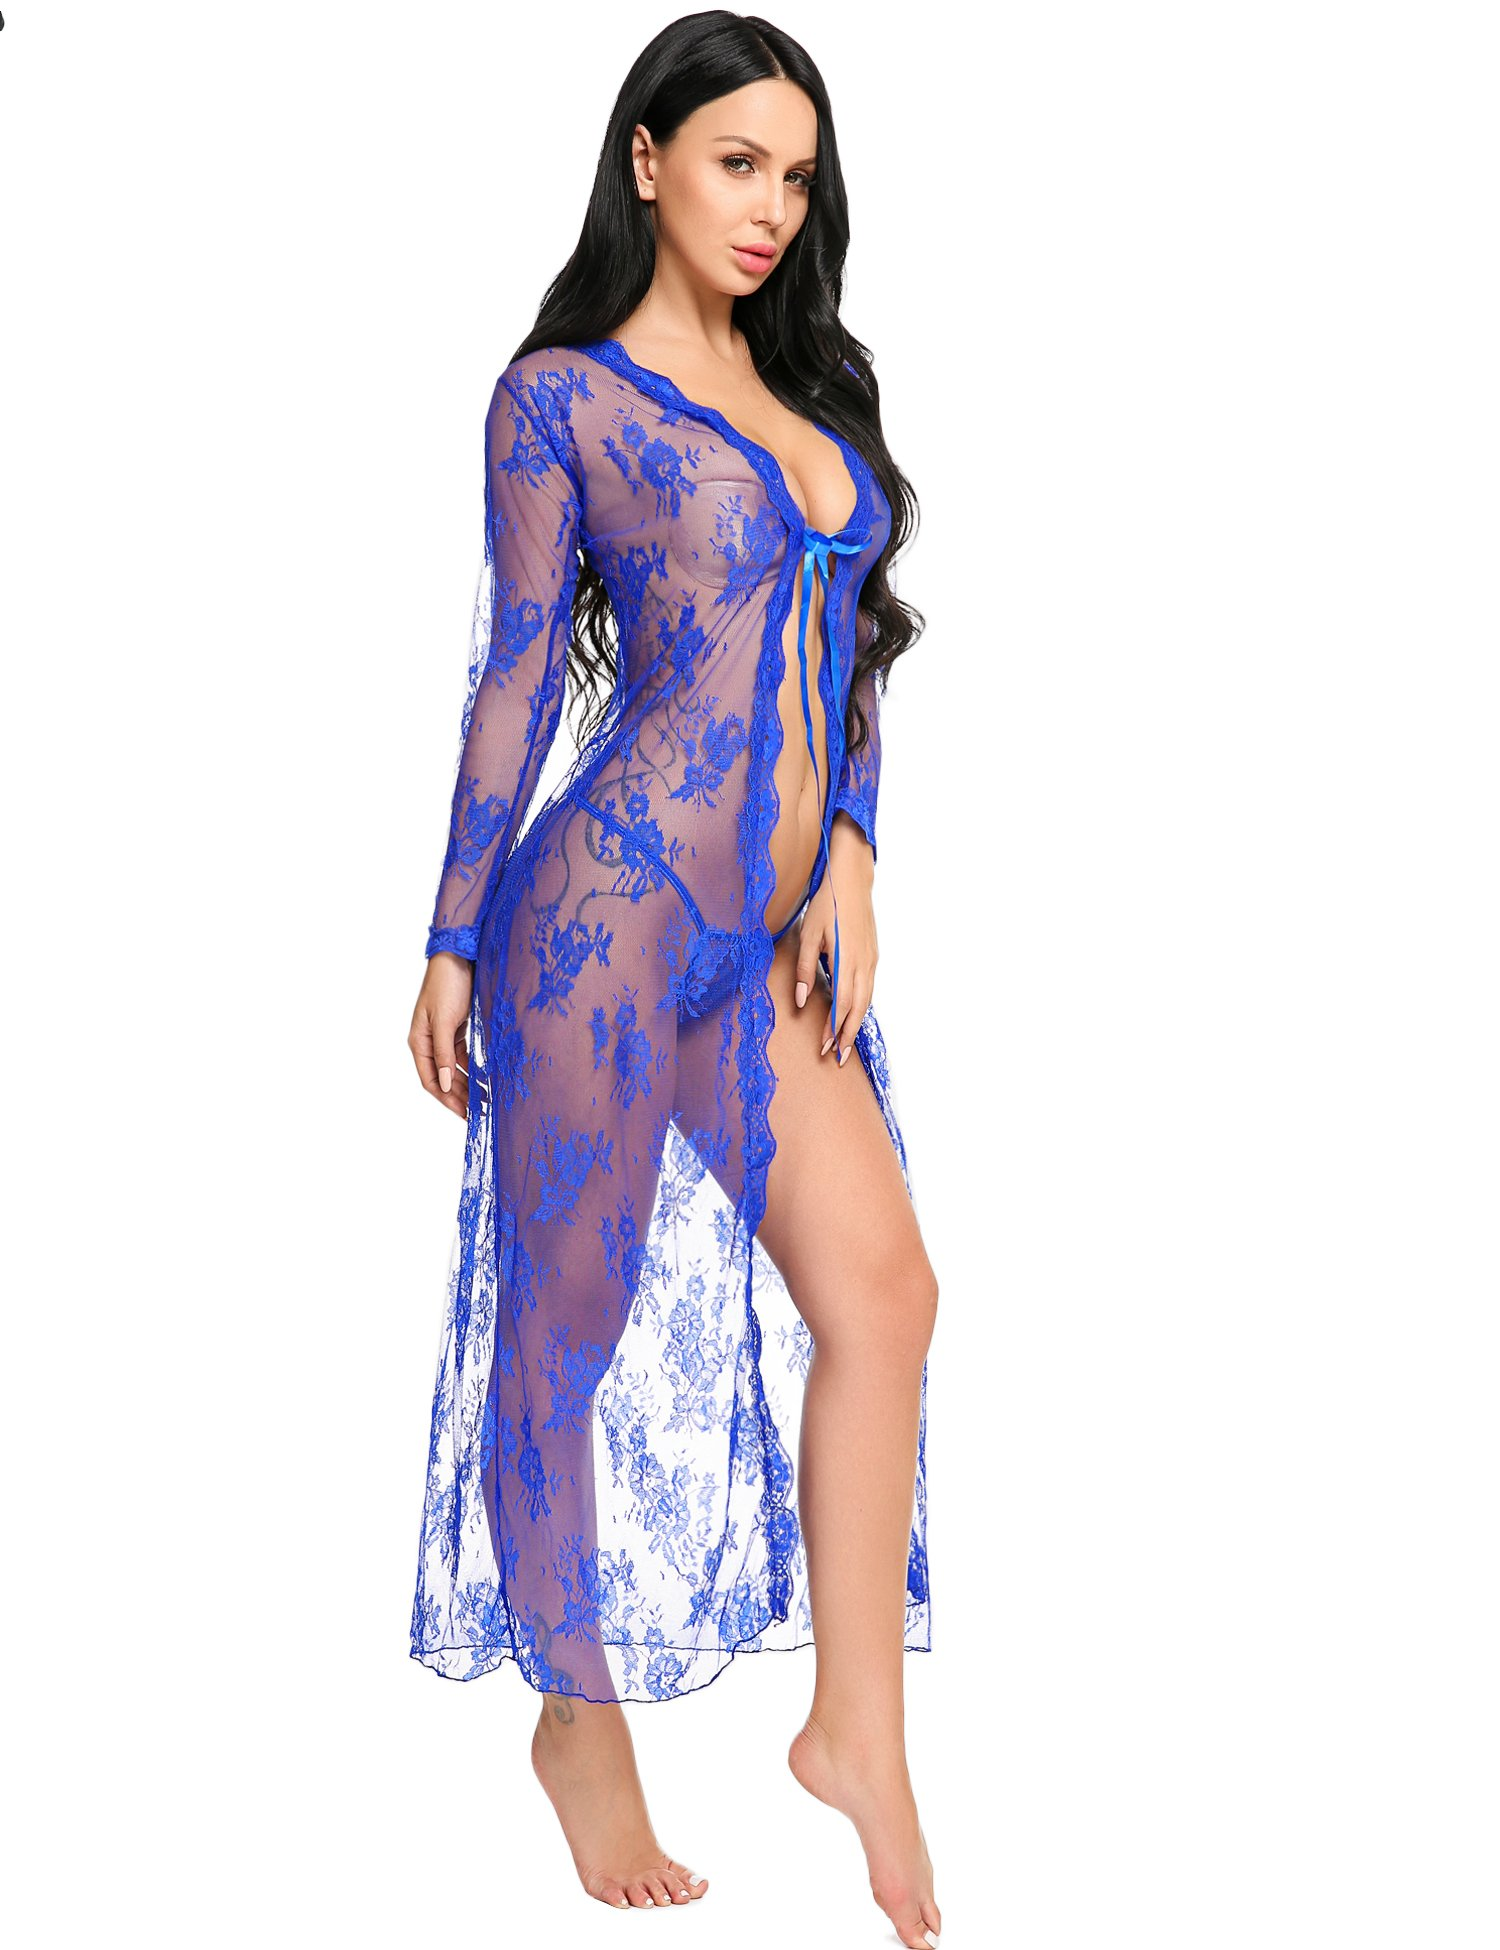 Summer Sexy Bath Robe Long Lace Night Gown Lady Lingerie Nightdress Retro Nightwear Dress,1_blue Lingerie Robe,X-Large